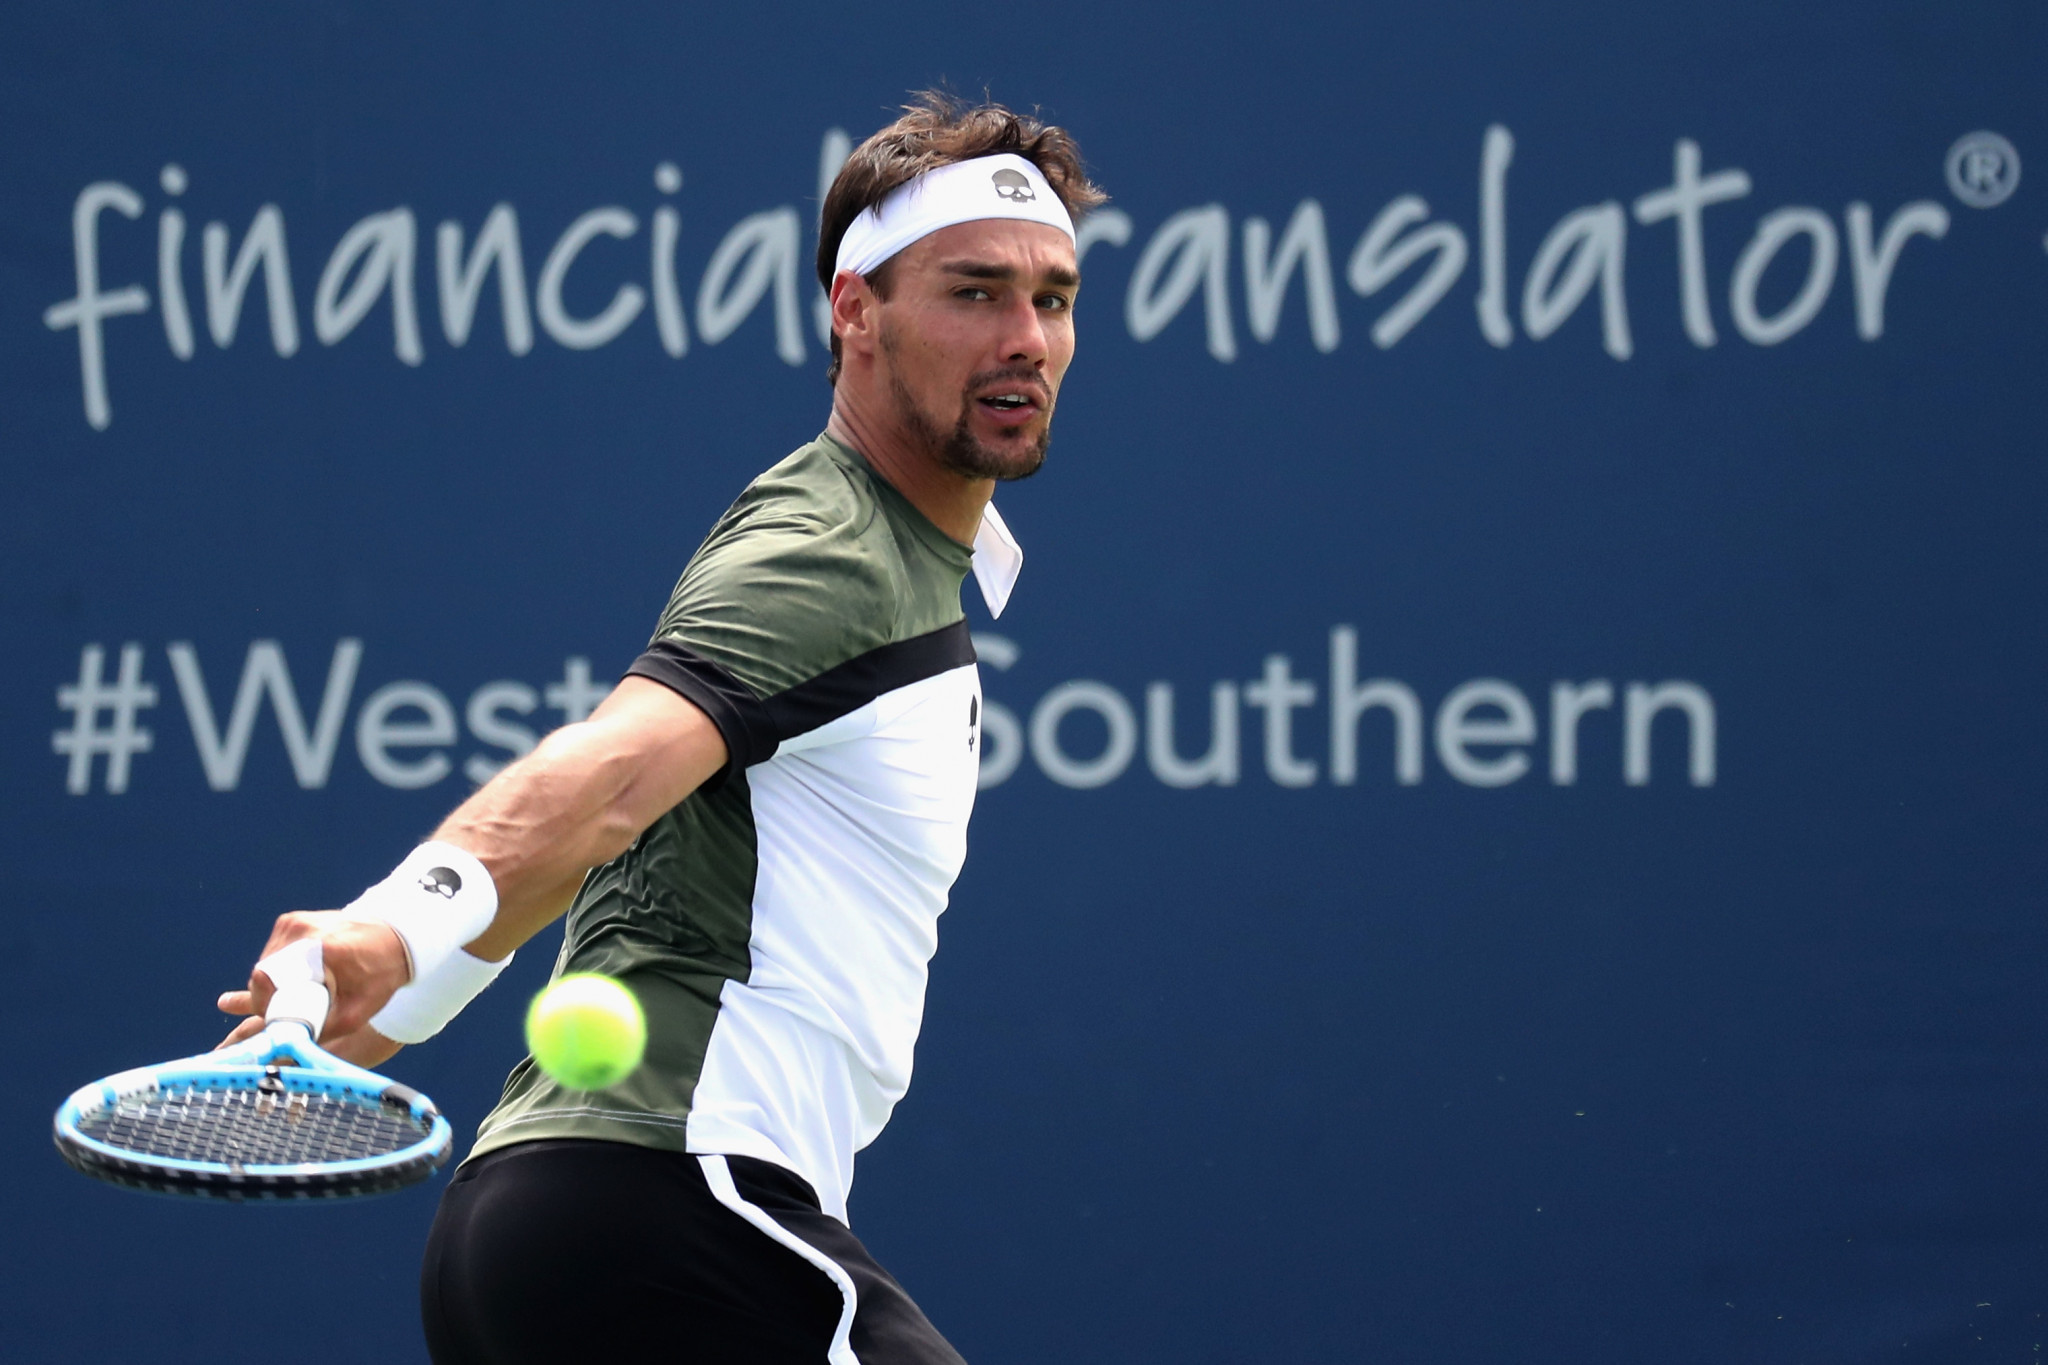 Fognini provisionally suspended from US Open for verbally abusing umpire